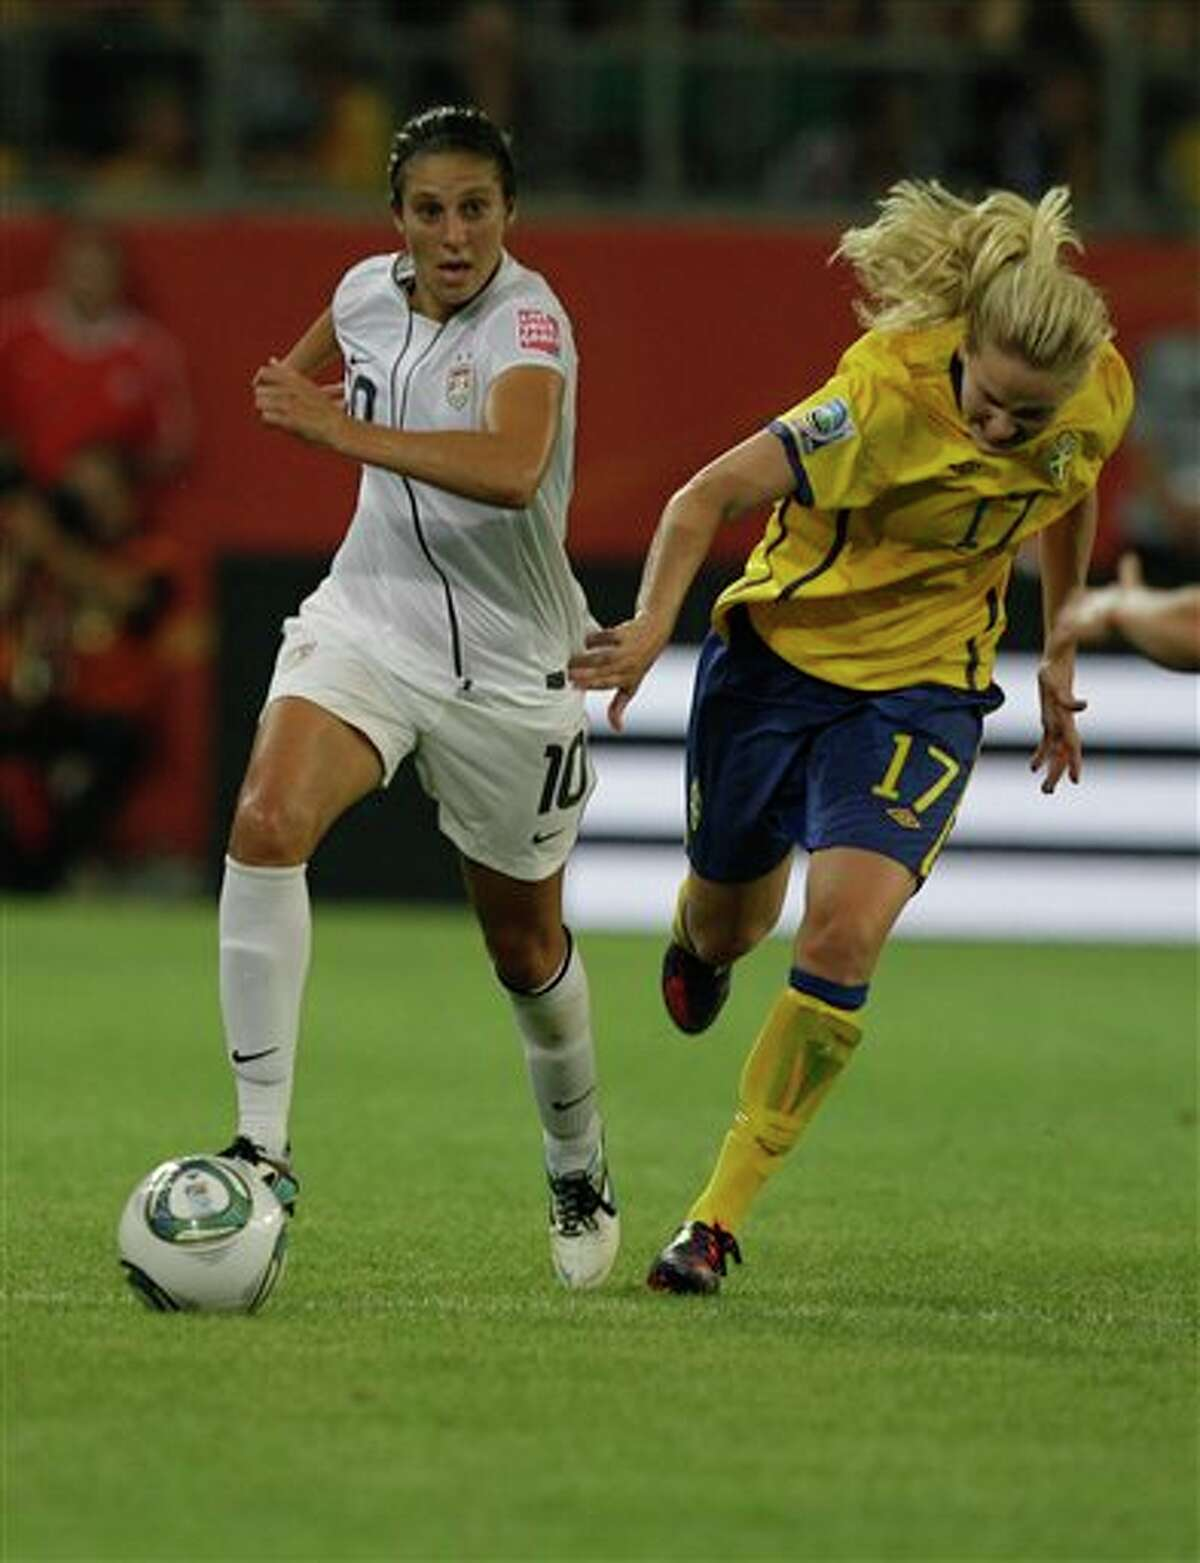 United States' Carli Lloyd, left, in action against Sweden's Lisa Dahlkvist during the group C match between Sweden and the United States at the Women�s Soccer World Cup in Wolfsburg, Germany, Wednesday, July 6, 2011. (AP Photo/Marcio Jose Sanchez)